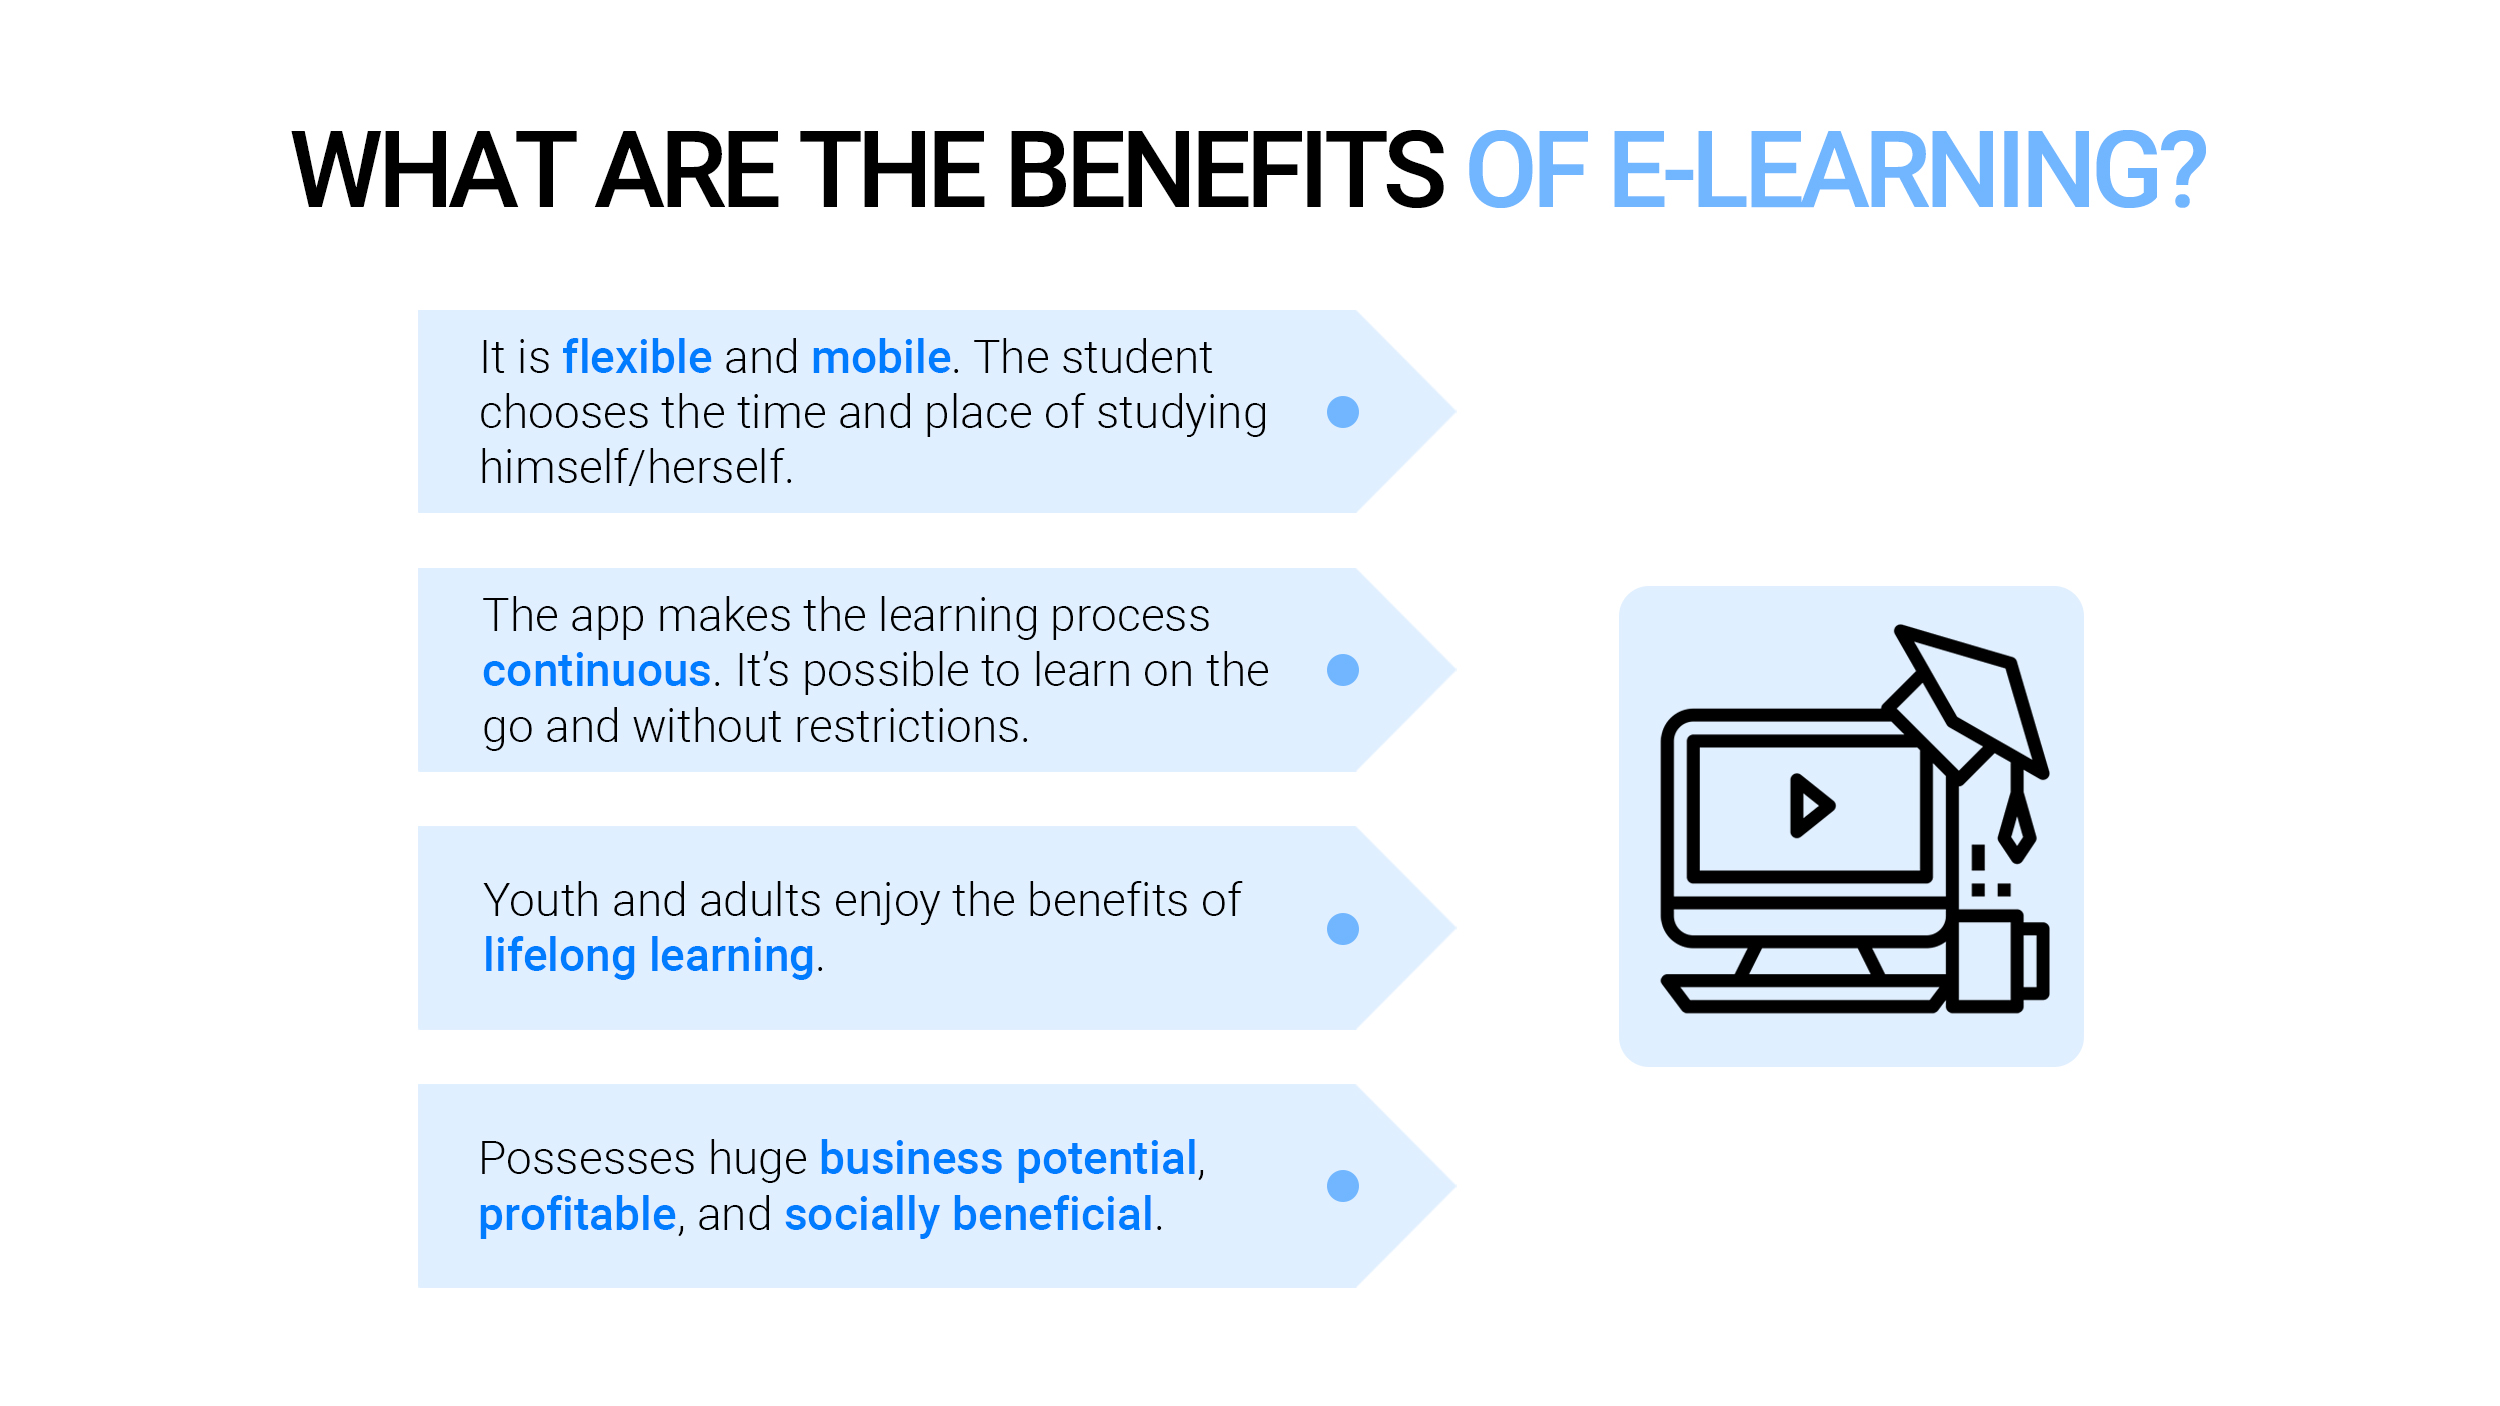 What are the benefits of eLearning